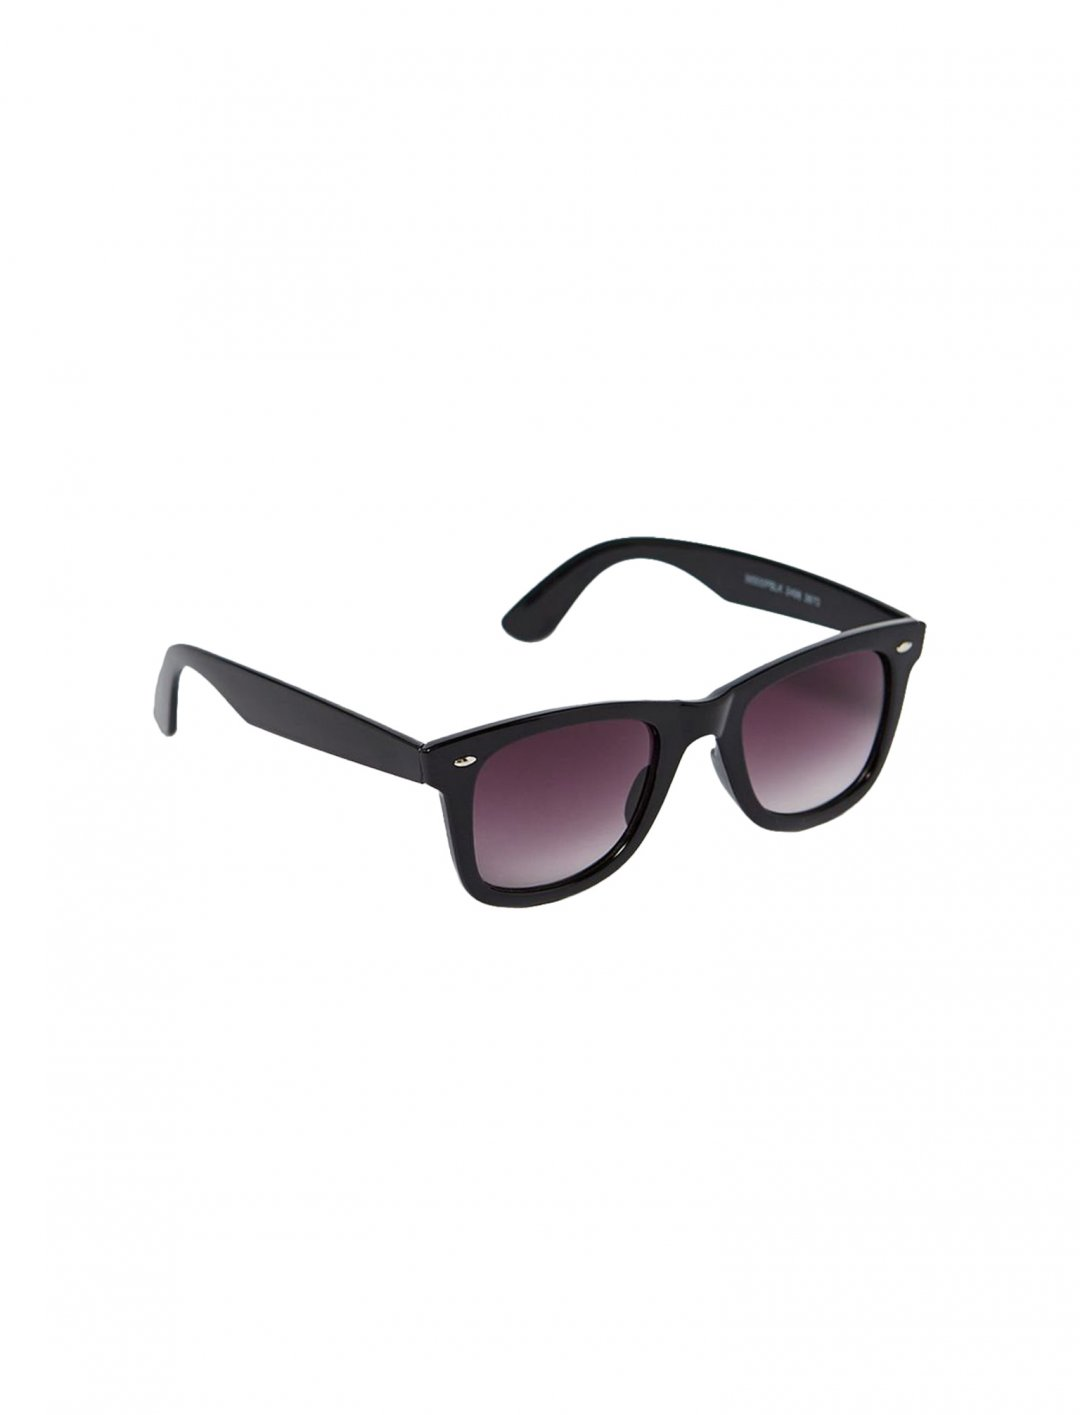 "Topman 50'S Style Sunglasses {""id"":16,""product_section_id"":1,""name"":""Accessories"",""order"":15} Topman"